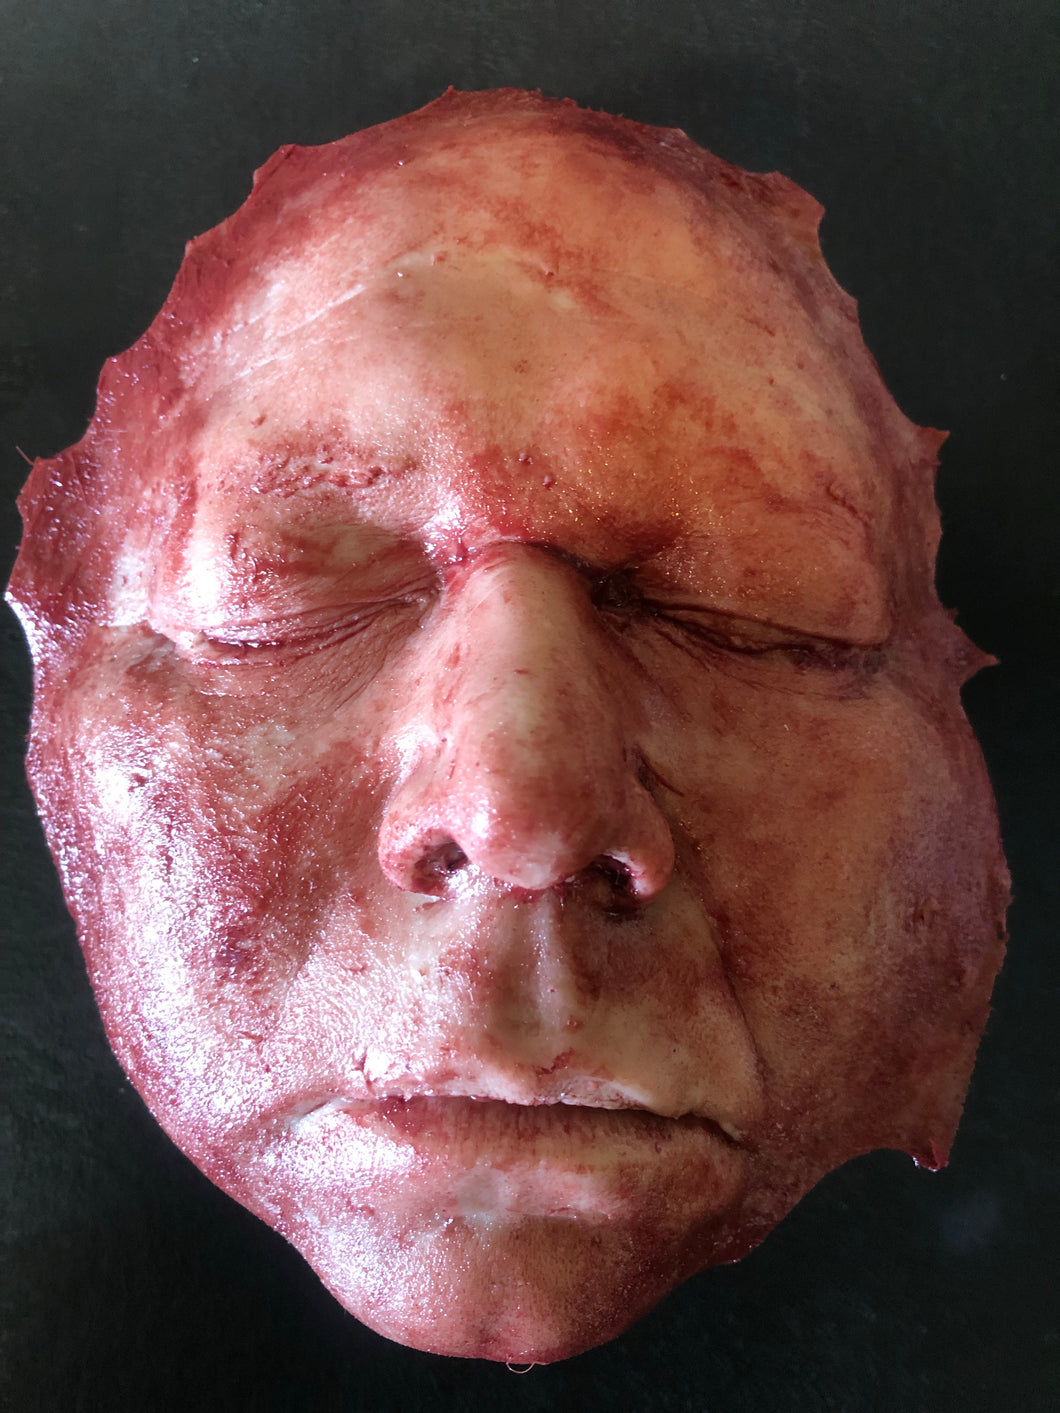 Skinned adult male face